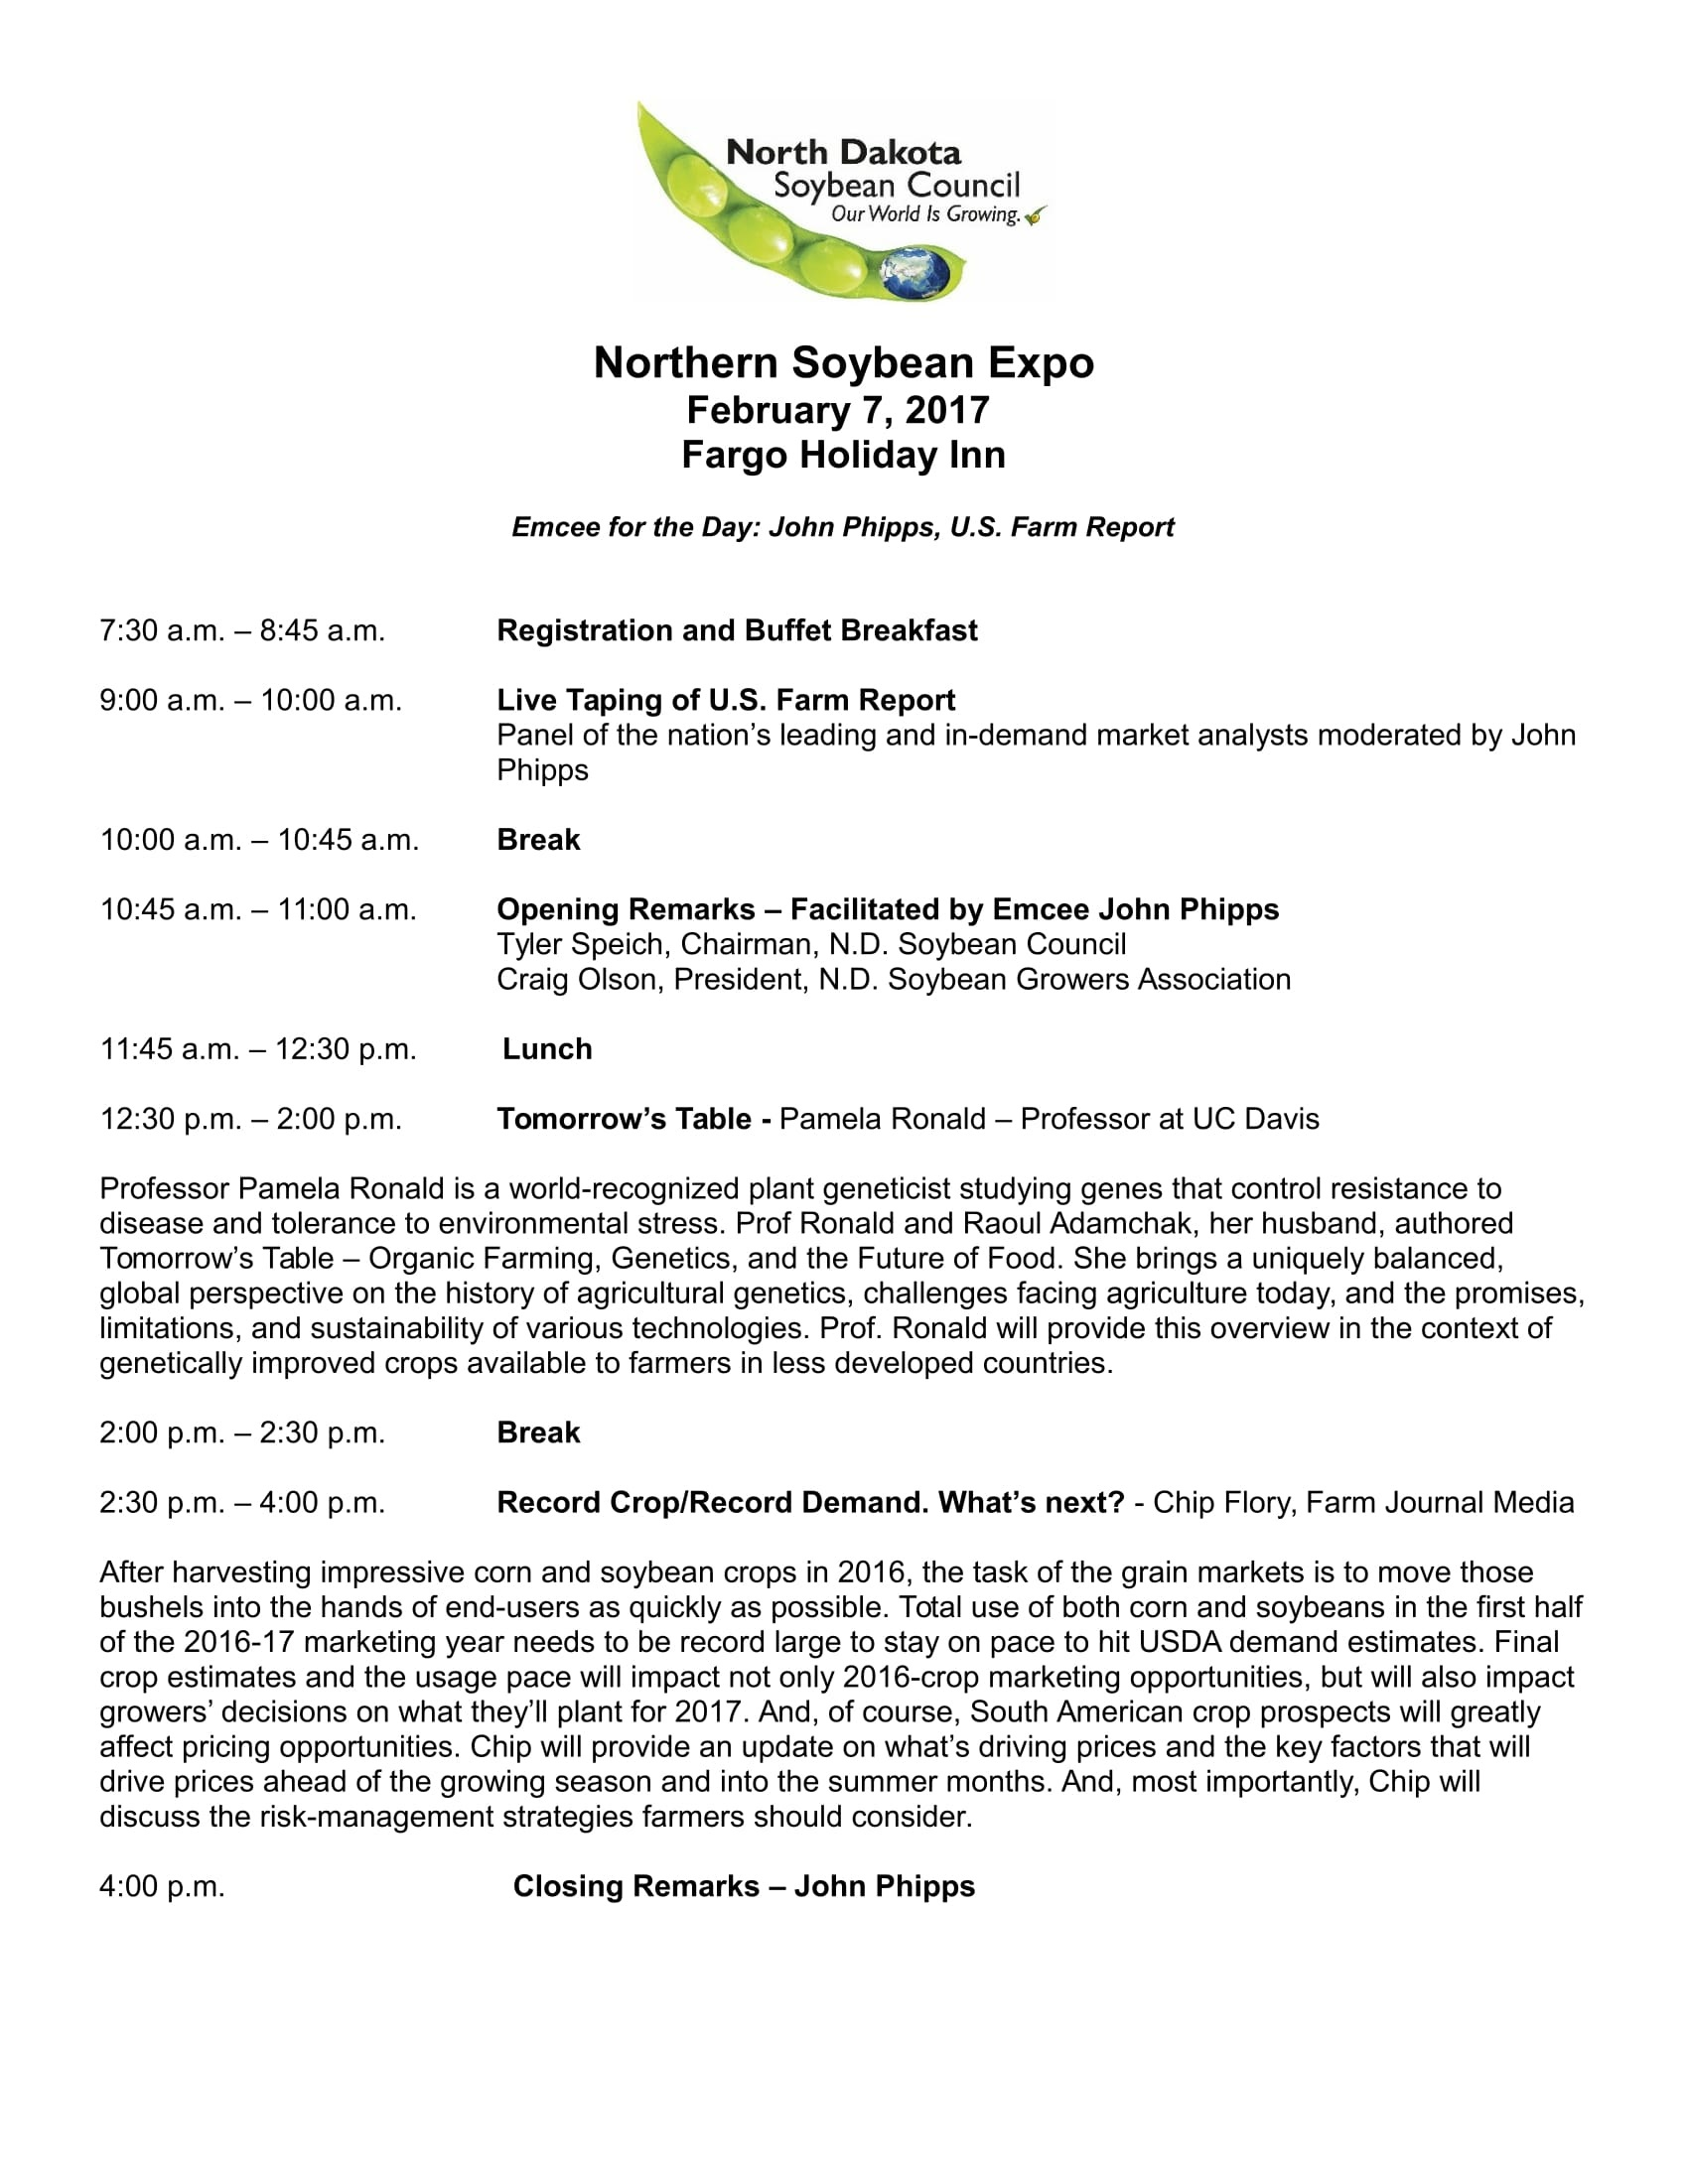 Northern Soybean Expo Schedule